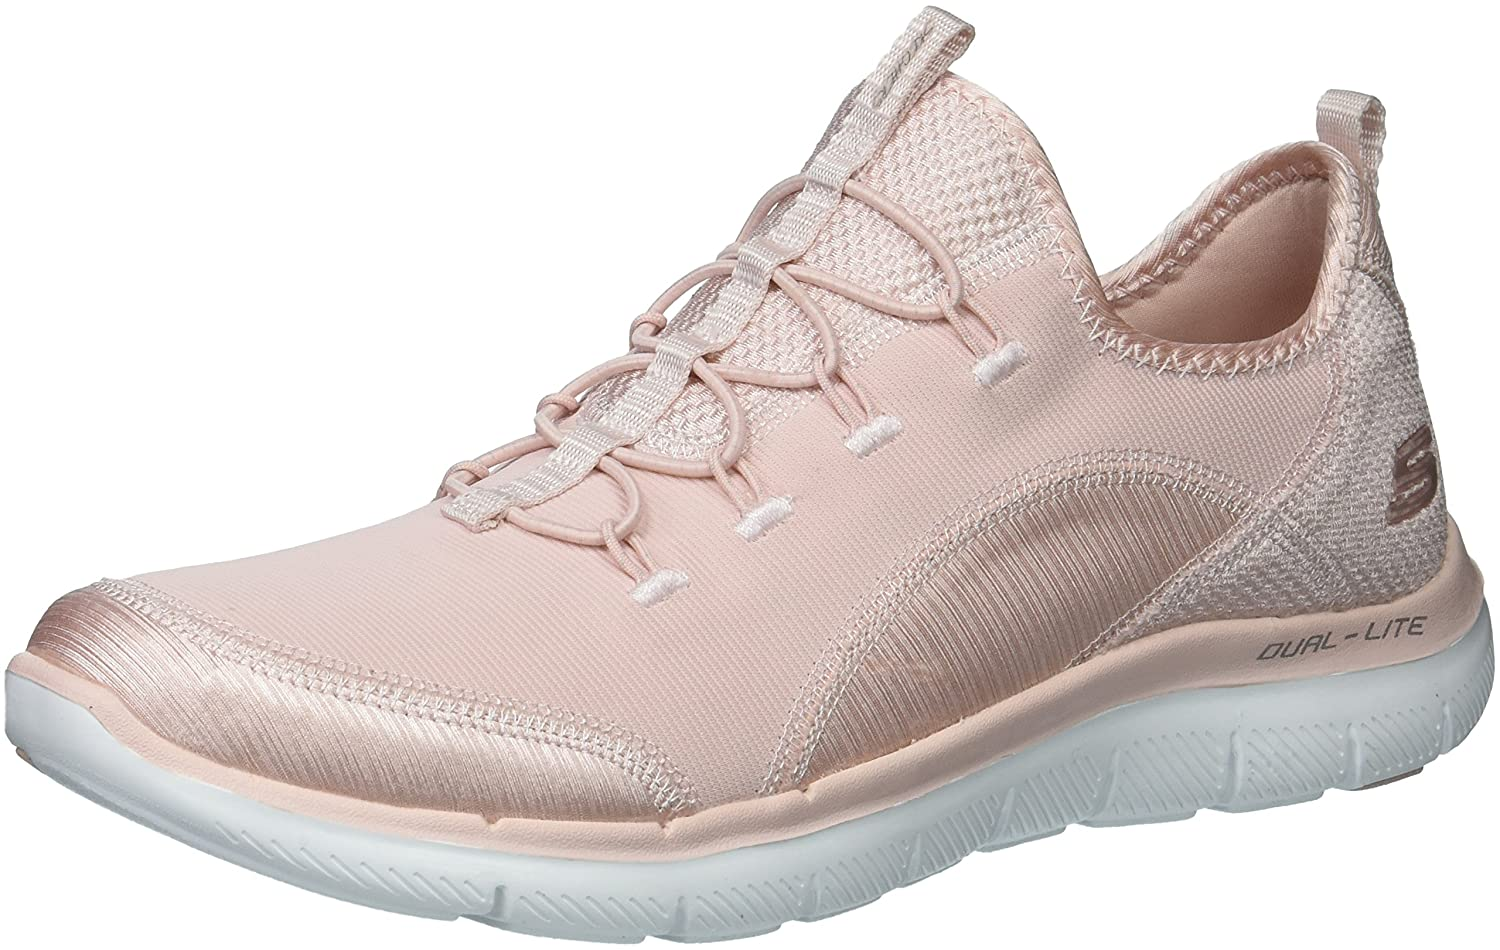 Skechers Flex Appeal 2.0 - Mixed Media,Pink  41 EU|Lt.pink